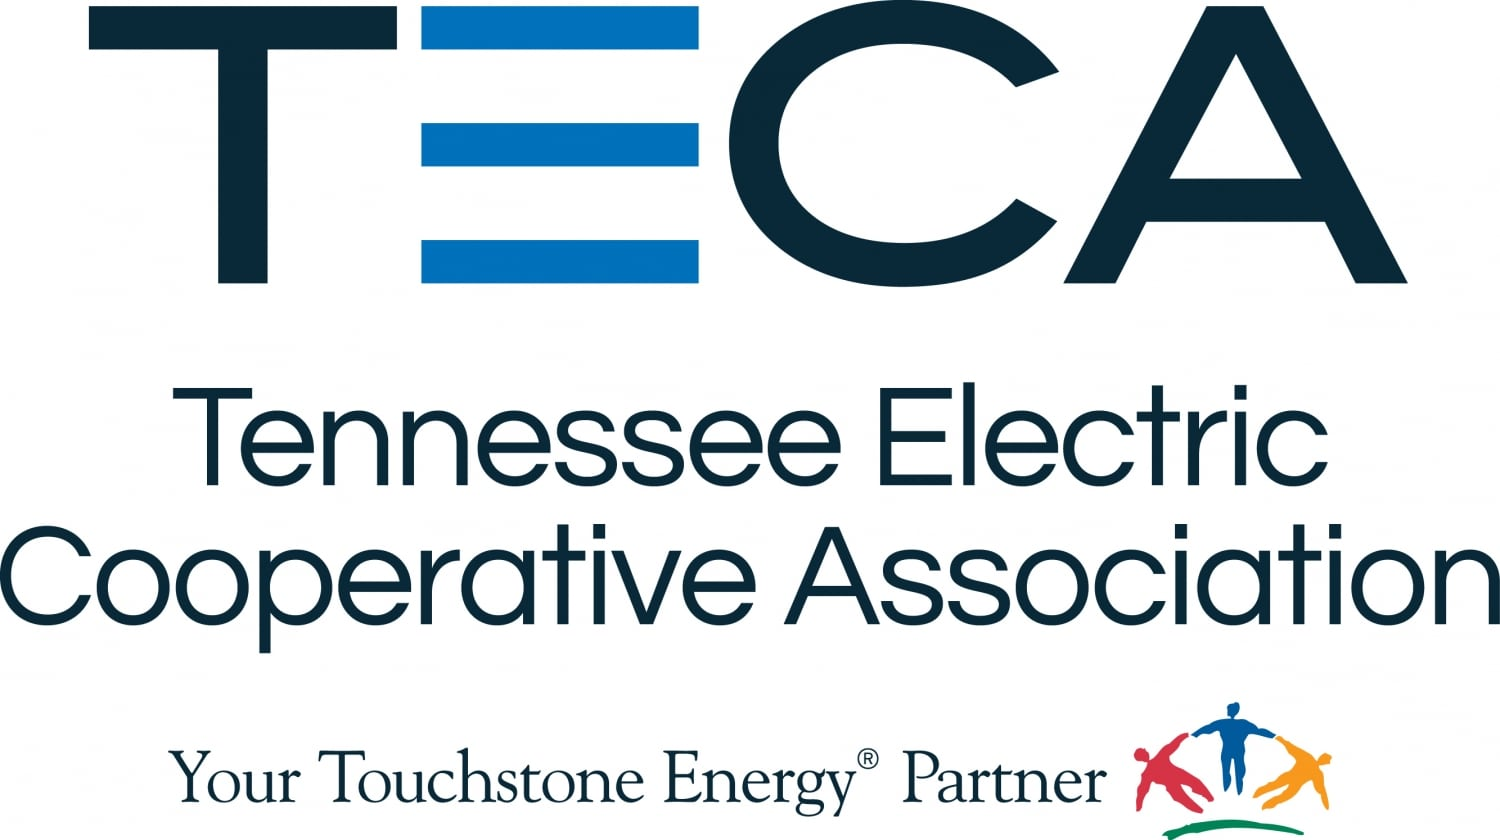 Home | Tennessee Electric Cooperative Association